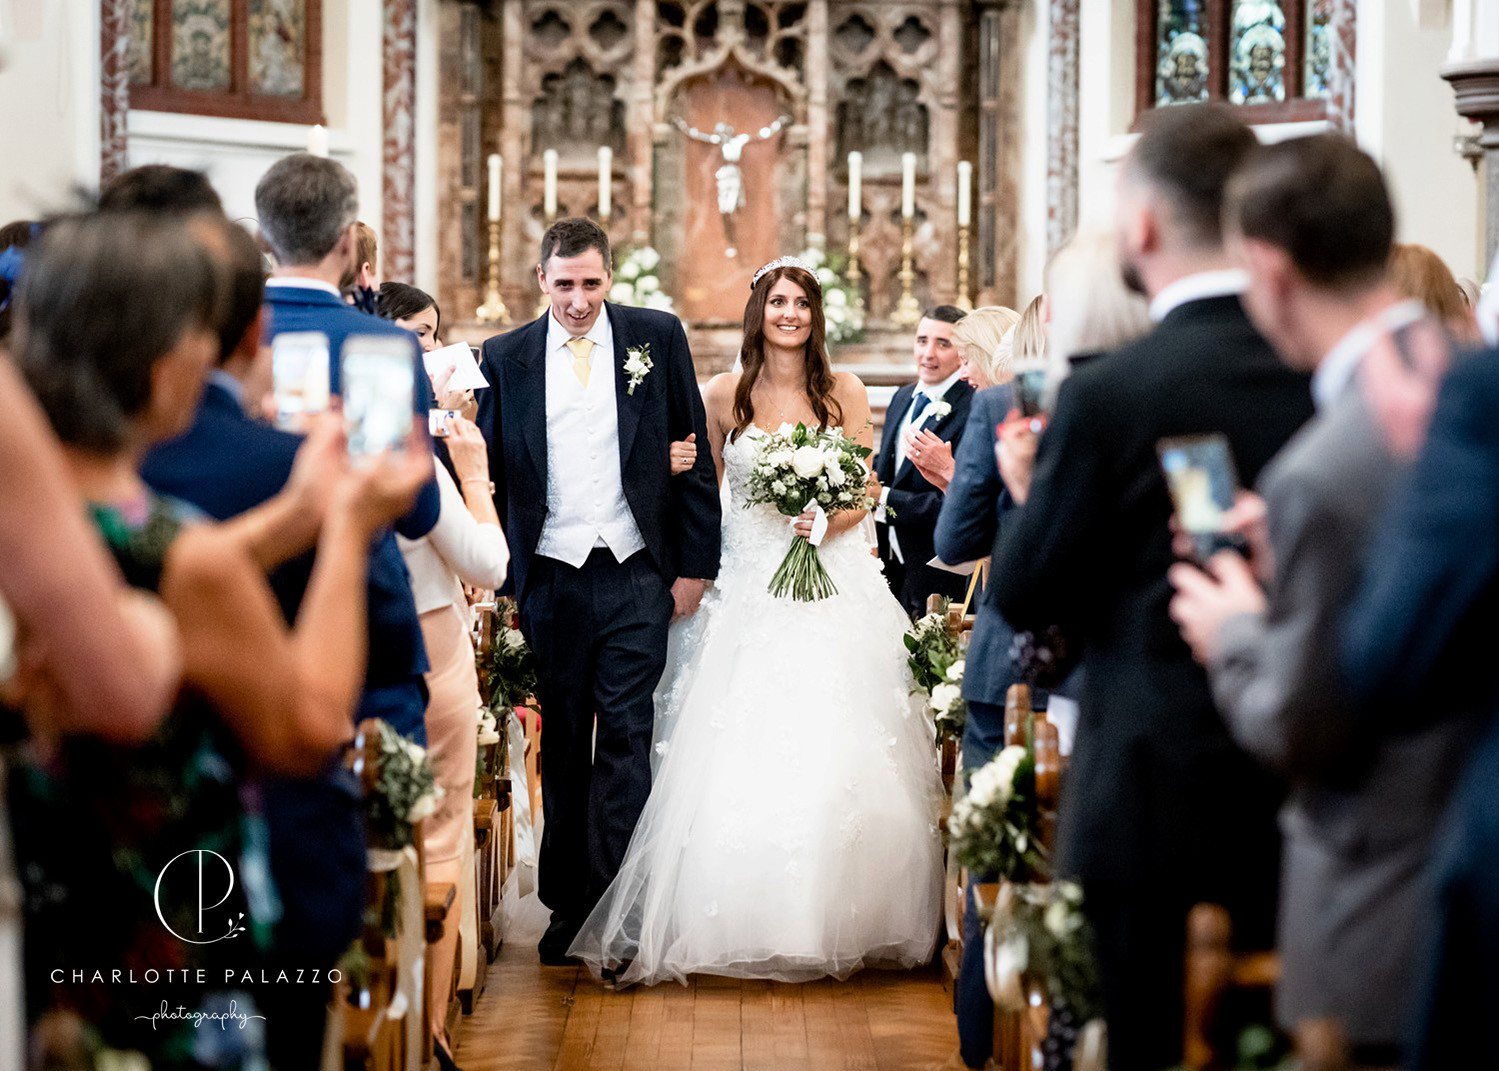 Fine_art_wedding_Photography_Cheshire_Wedding_Venues_The_Mere_Resort_0029.jpg